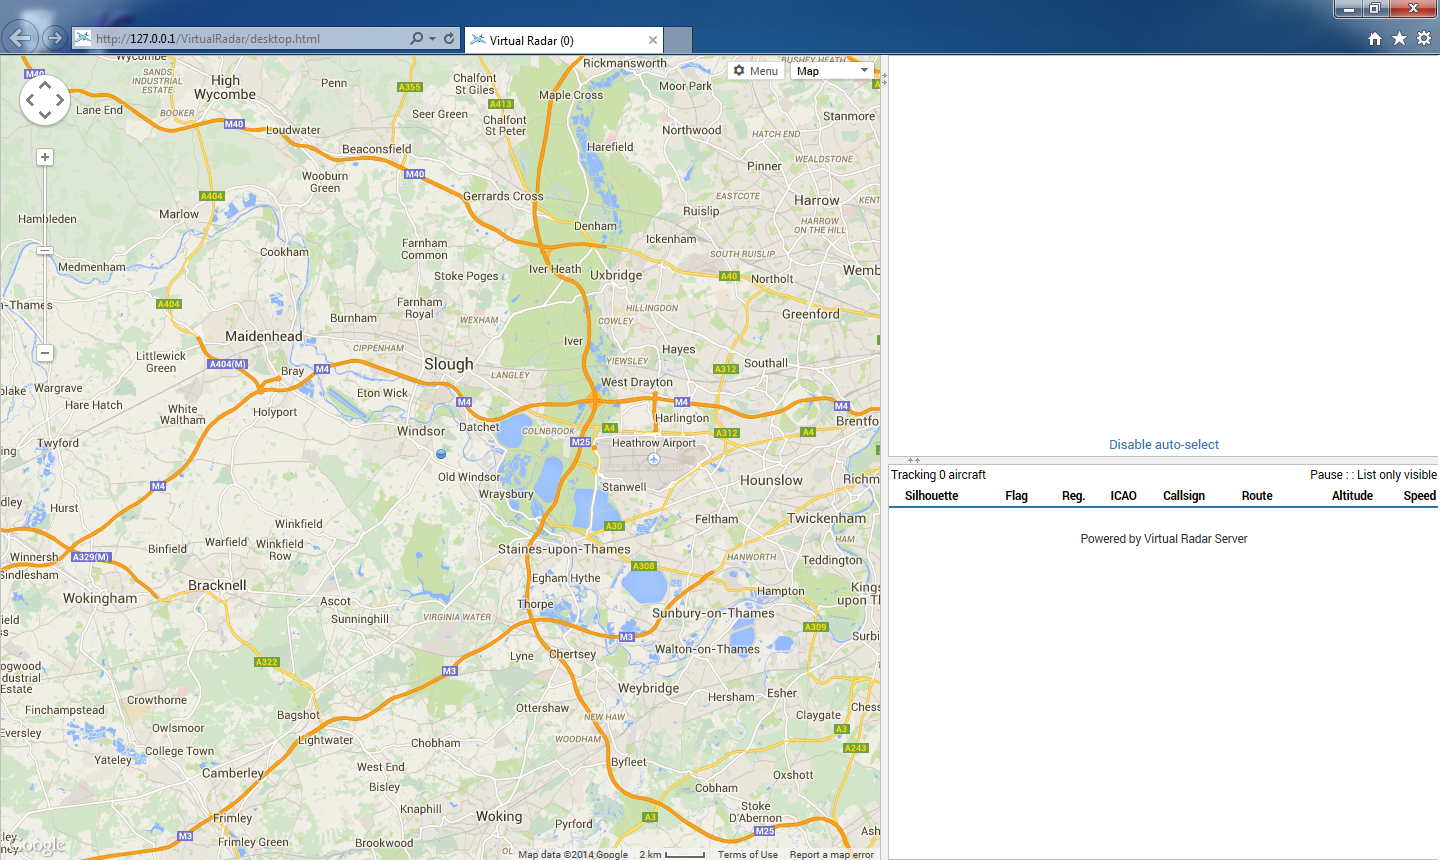 adsb-07_browser-02_initial_location.png